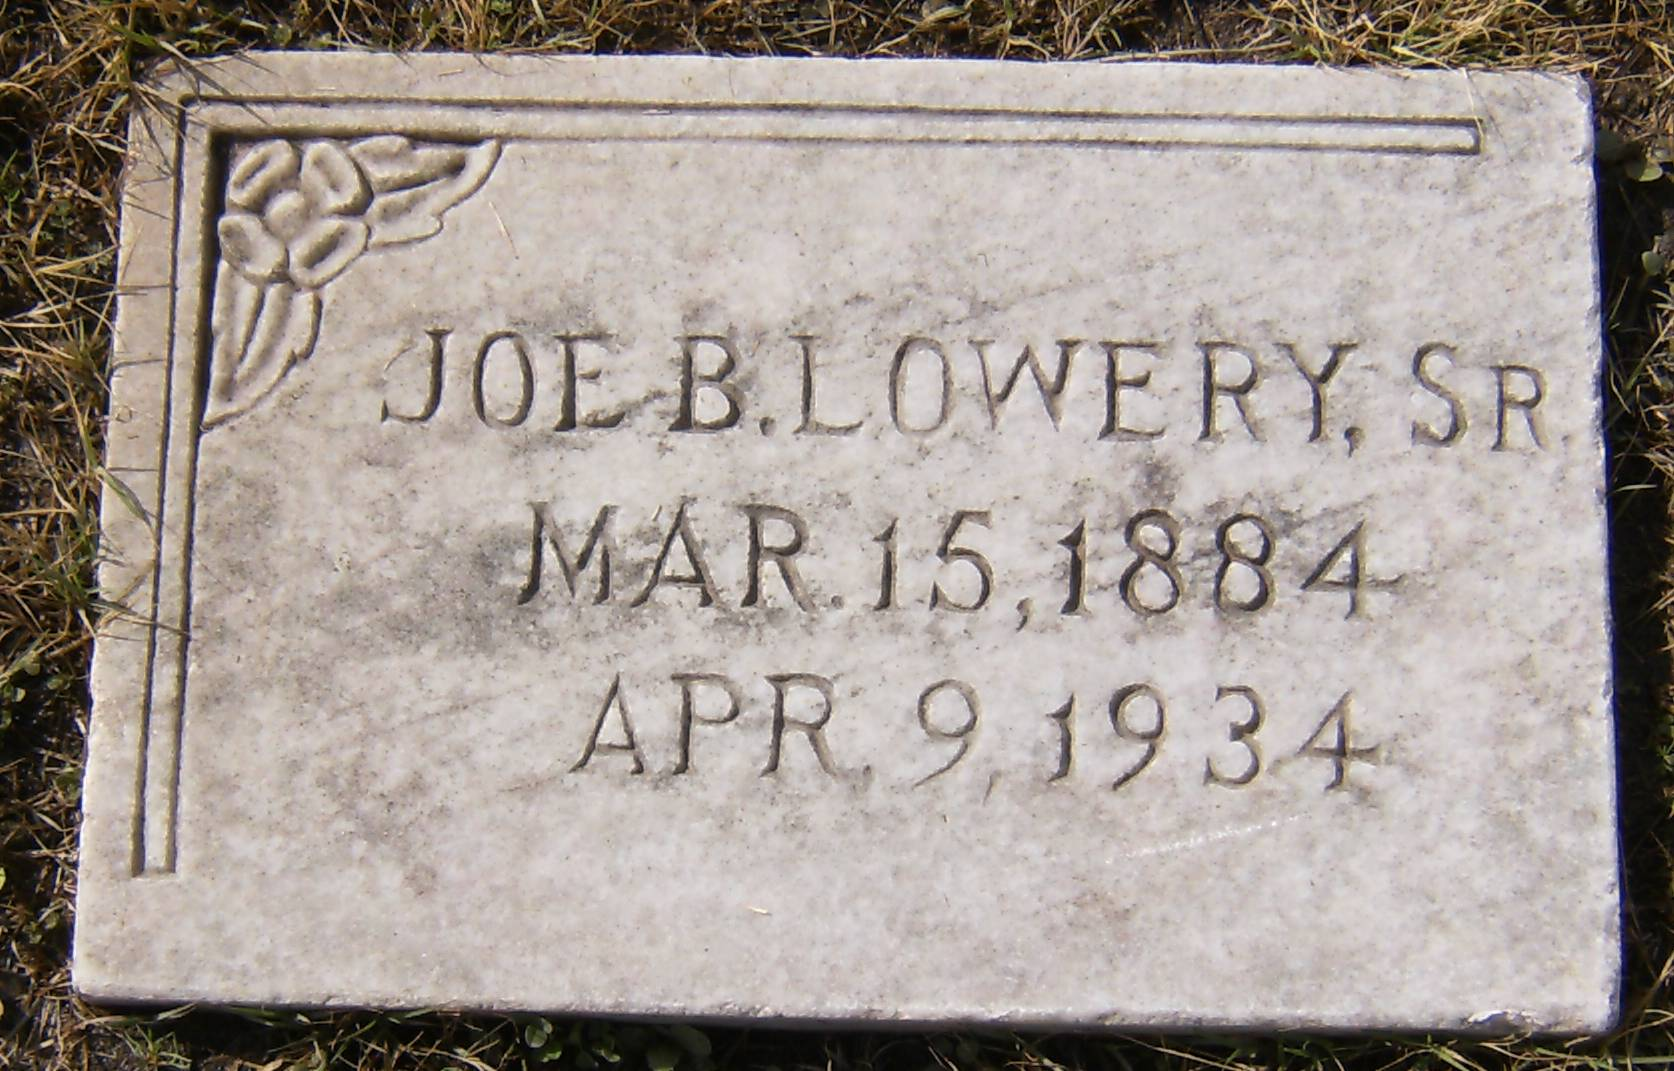 Joe Brown Lowery